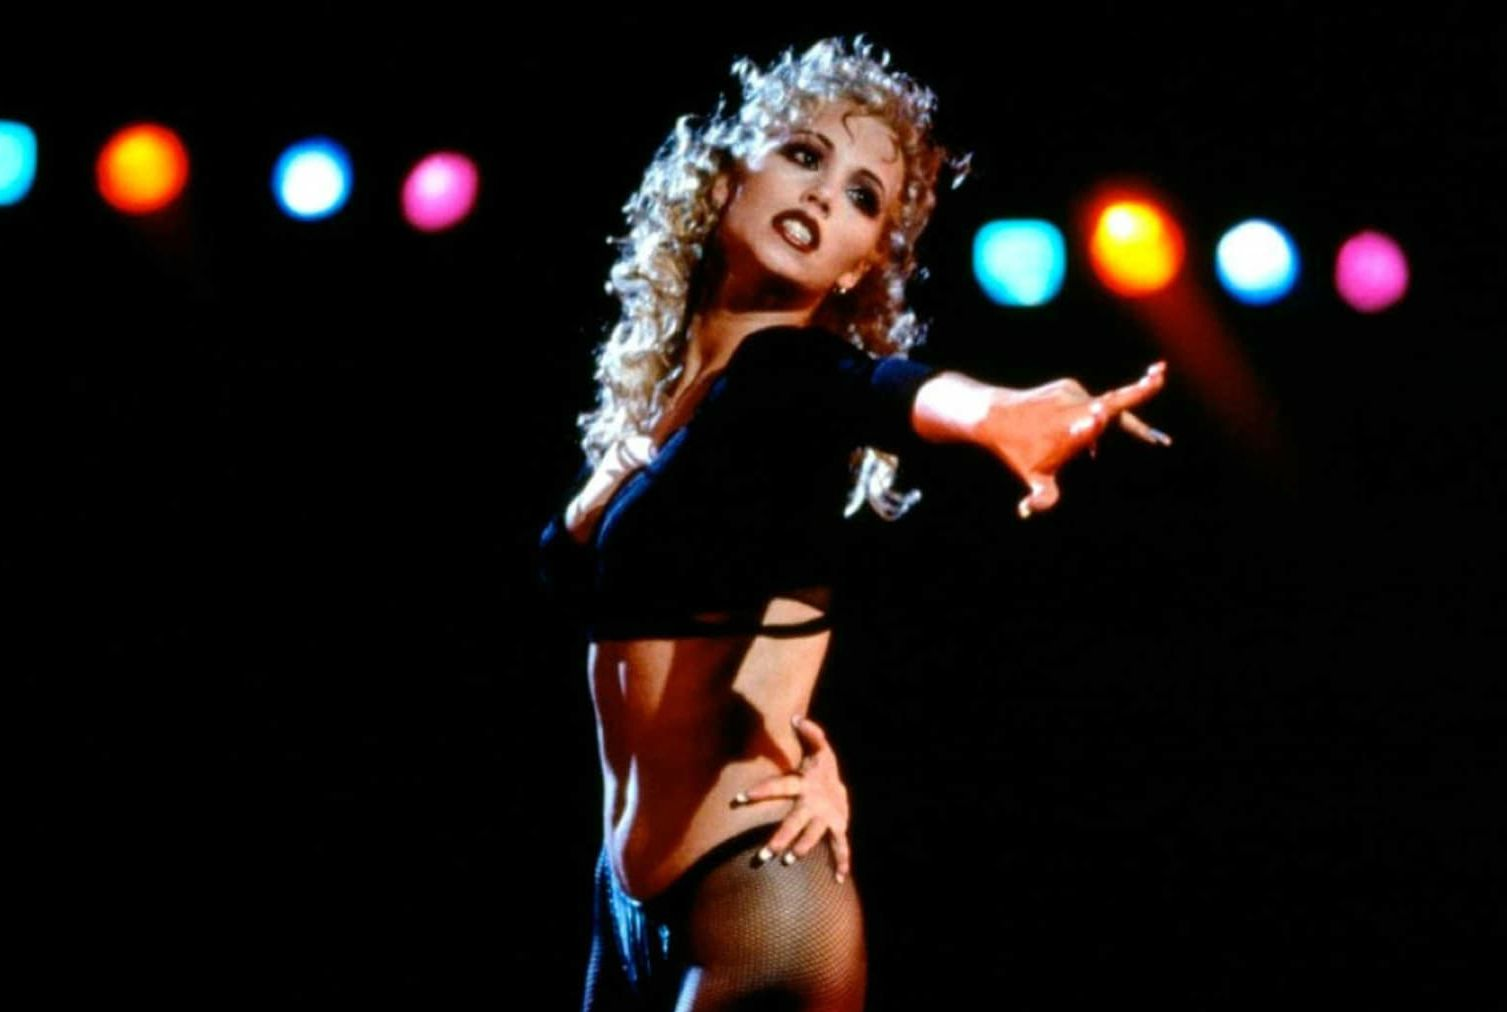 showgirls 1 30 Scandalous Things You Never Knew About Basic Instinct